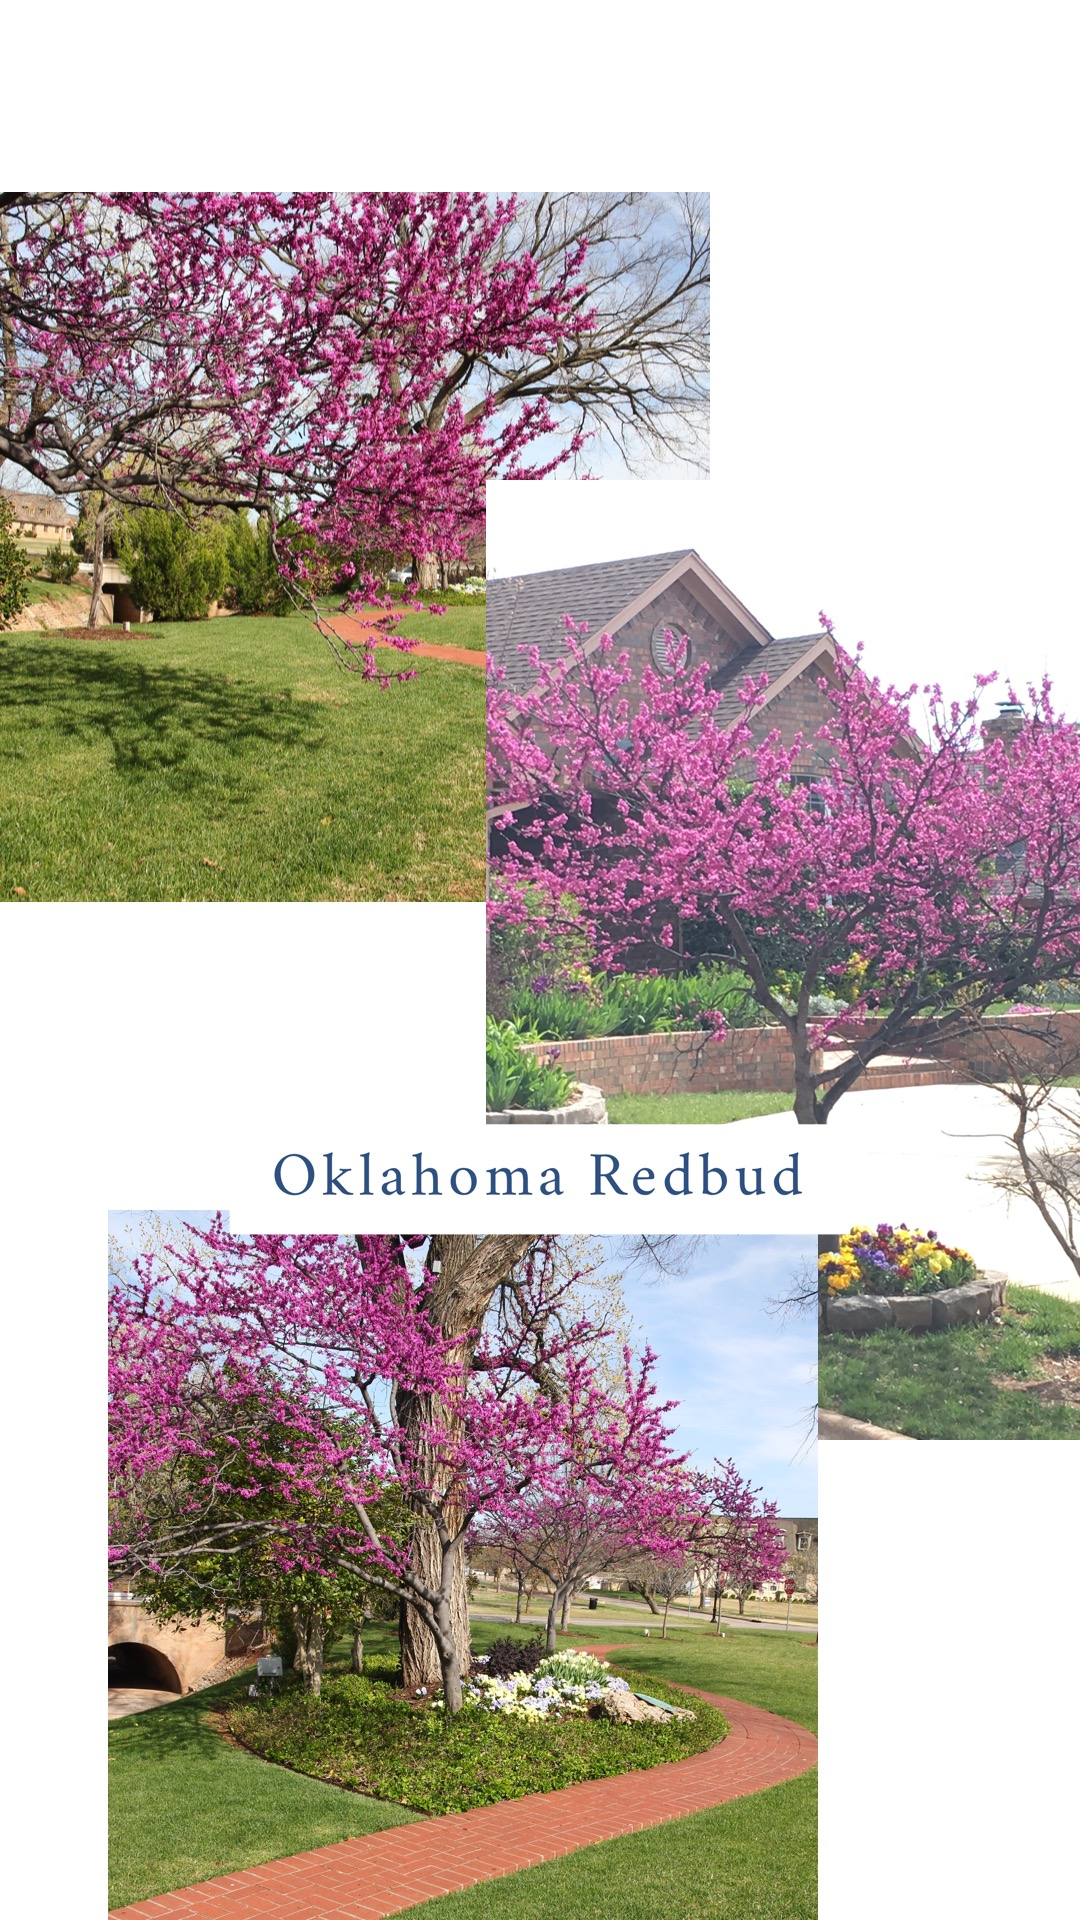 "Redbud (Cercis canadensis var. texenis 'Oklahoma').  My all-time favorite ""Welcome to spring"" plant.  (You can expect me to dedicate an entire email to this tree every spring!)  Reddish-purple blooms appear on branches before leaves appear. The 'Oklahoma' variety was discovered in the Arbuckle Mountains and know for its glossy, heart shaped, green leaves in the summer. It grows to 15'-20'. Prefers full sun but does well as an understory tree in dabbled shade."